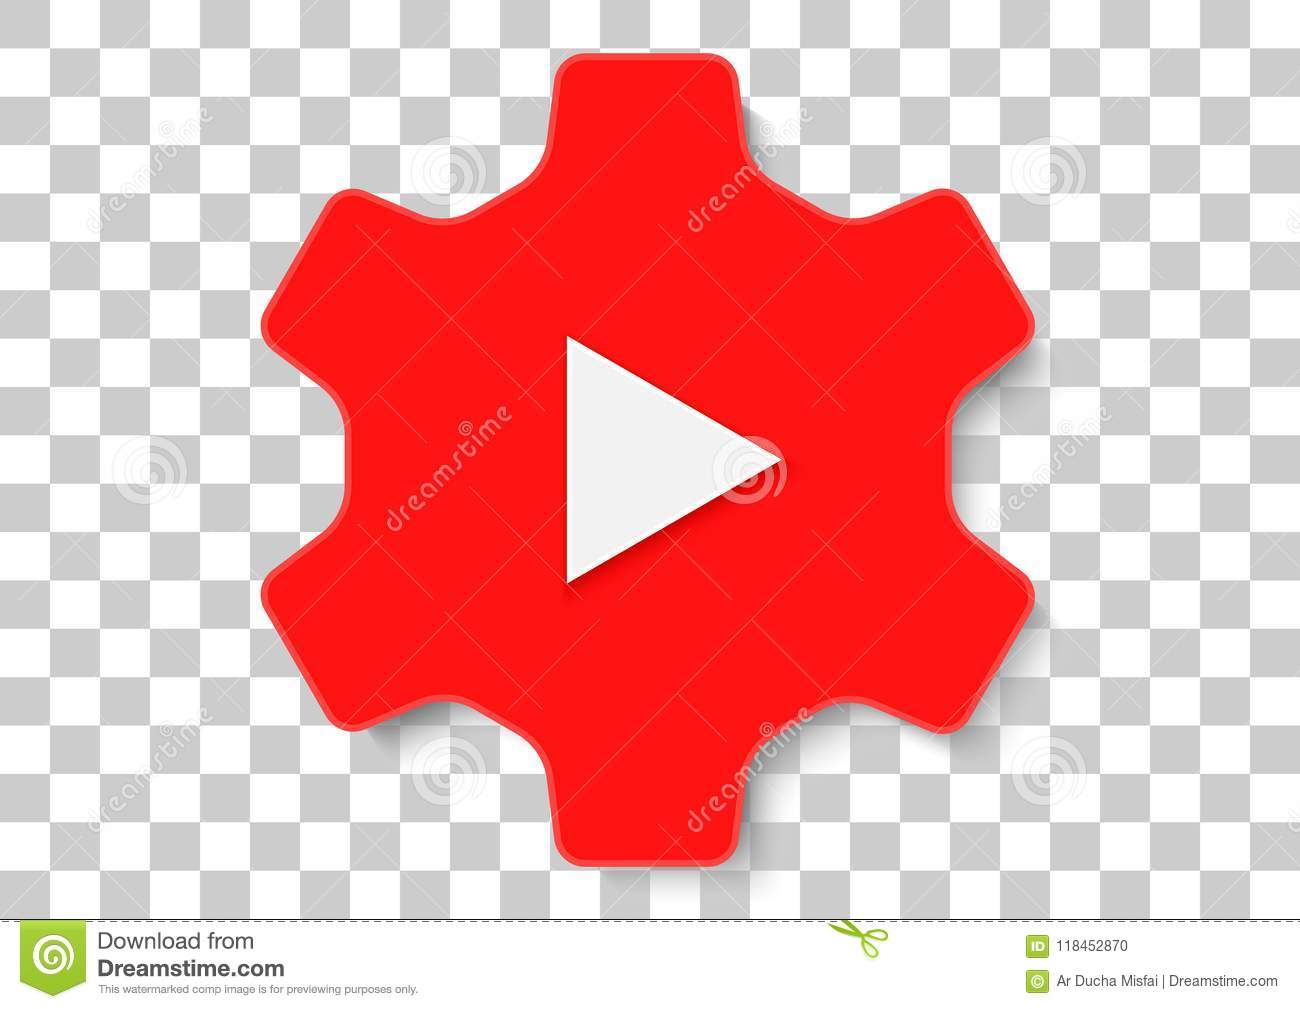 Youtube studio apk icon editorial image  Illustration of